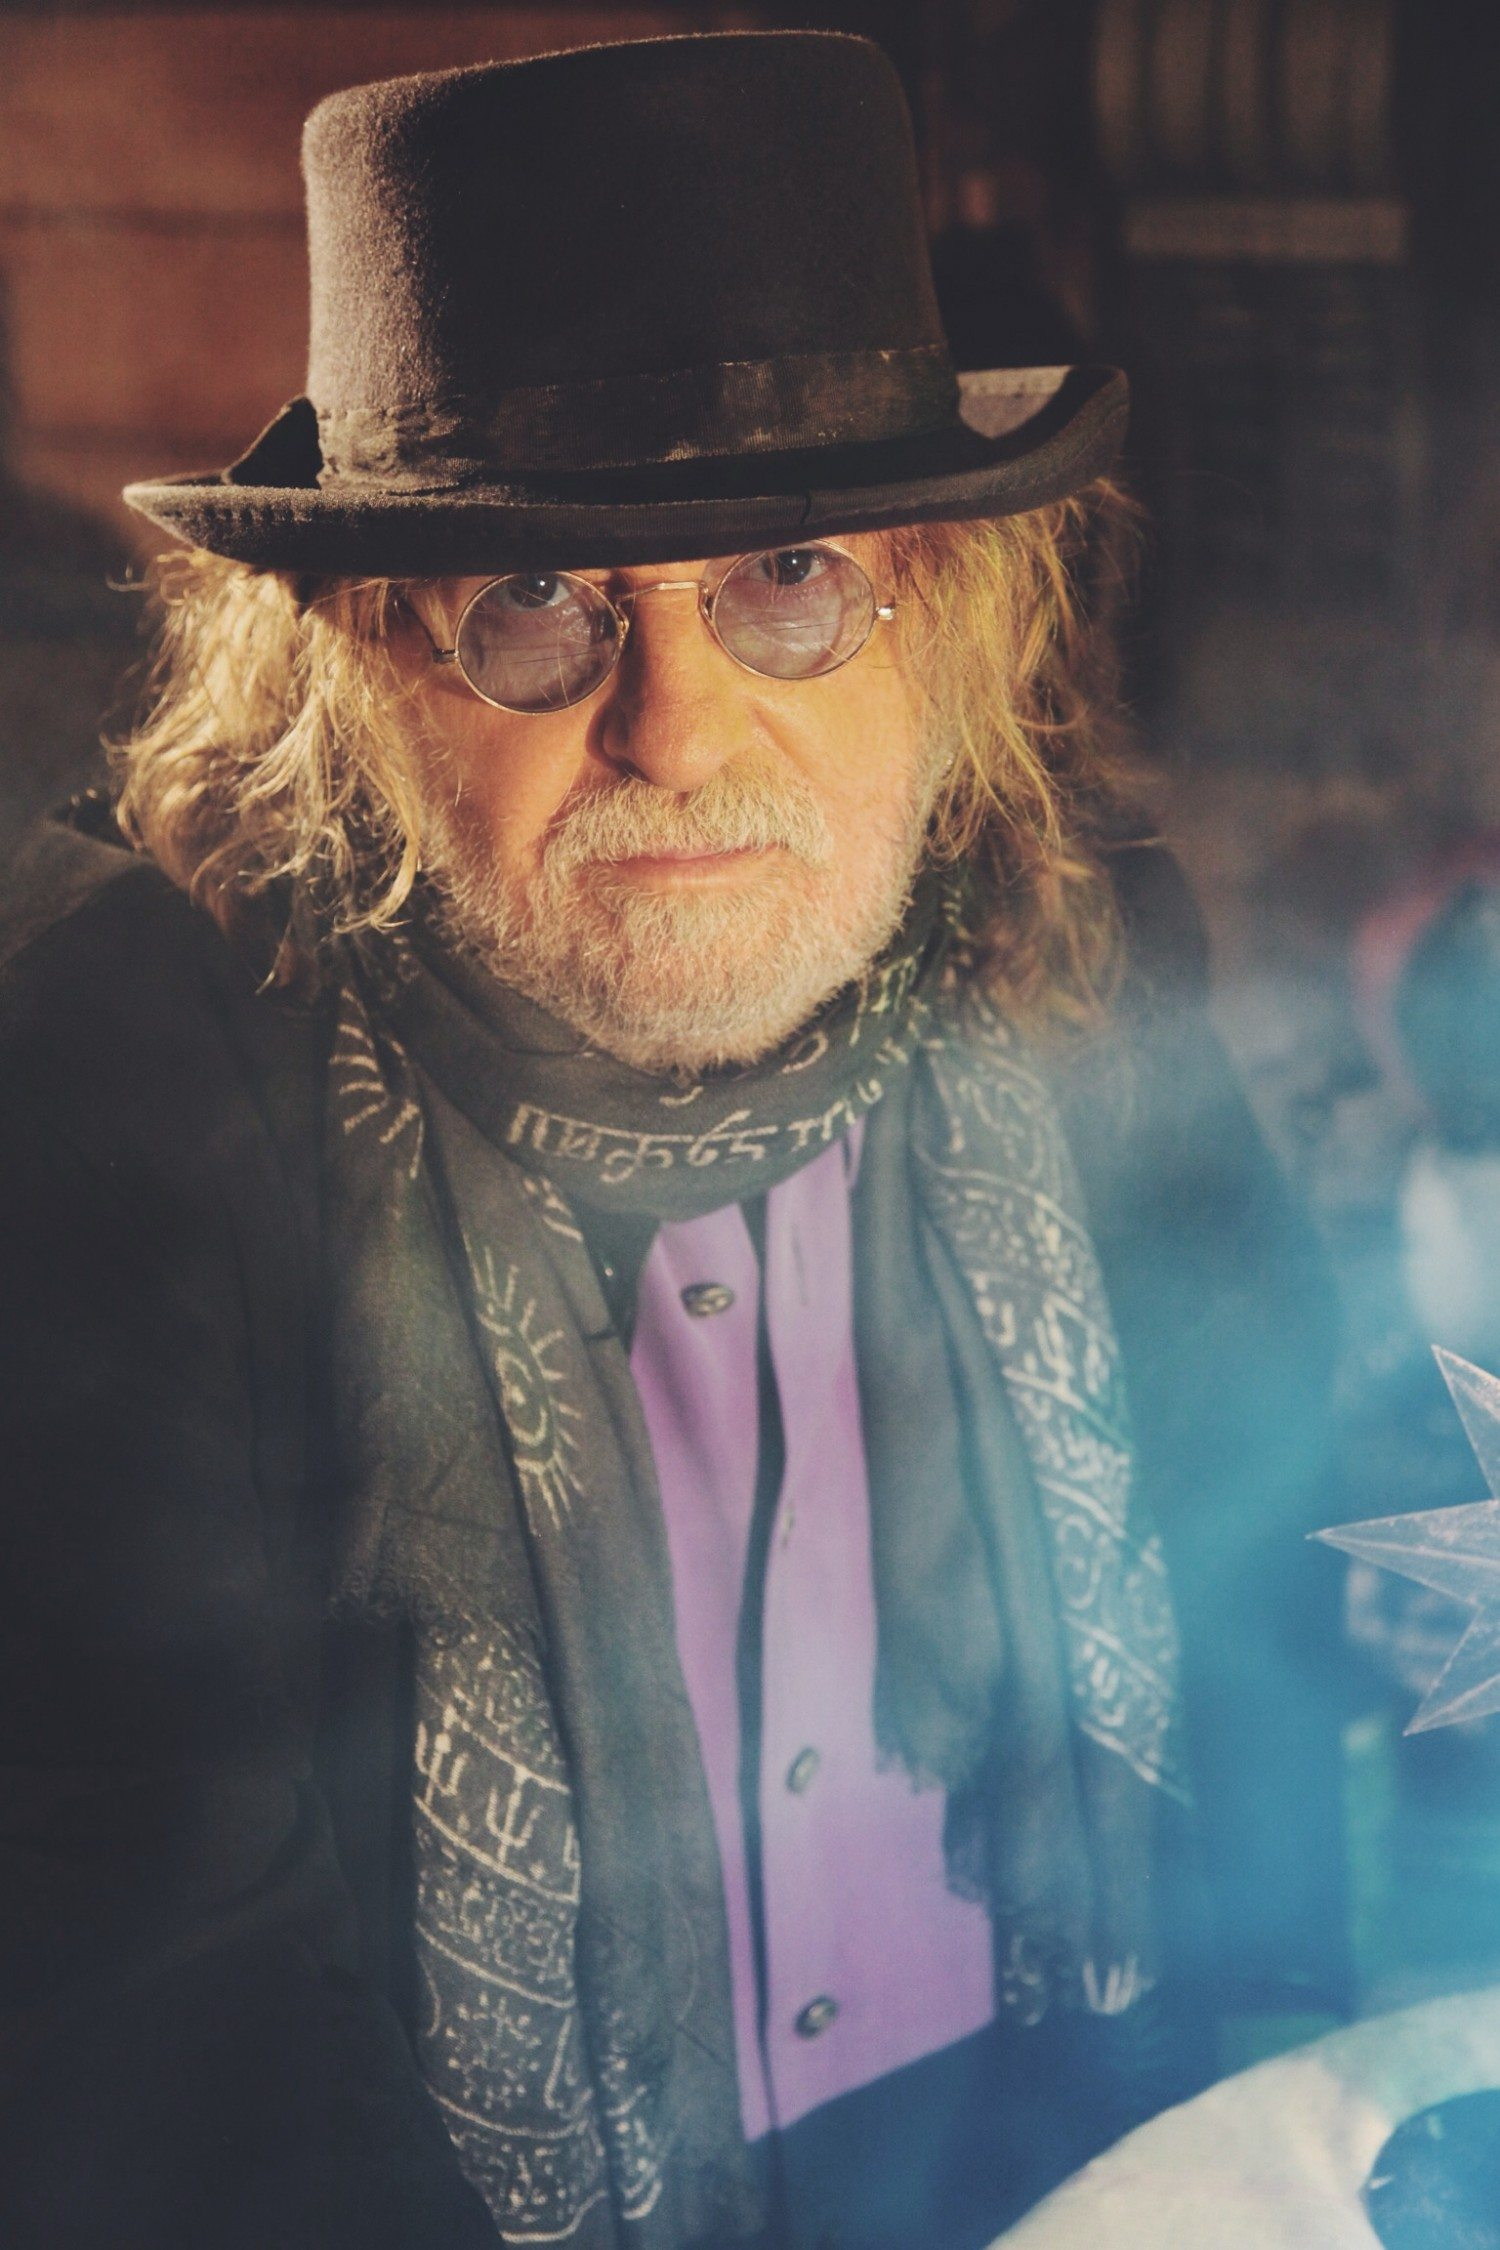 Ray Wylie Hubbard - Photo by Eryn Brooke